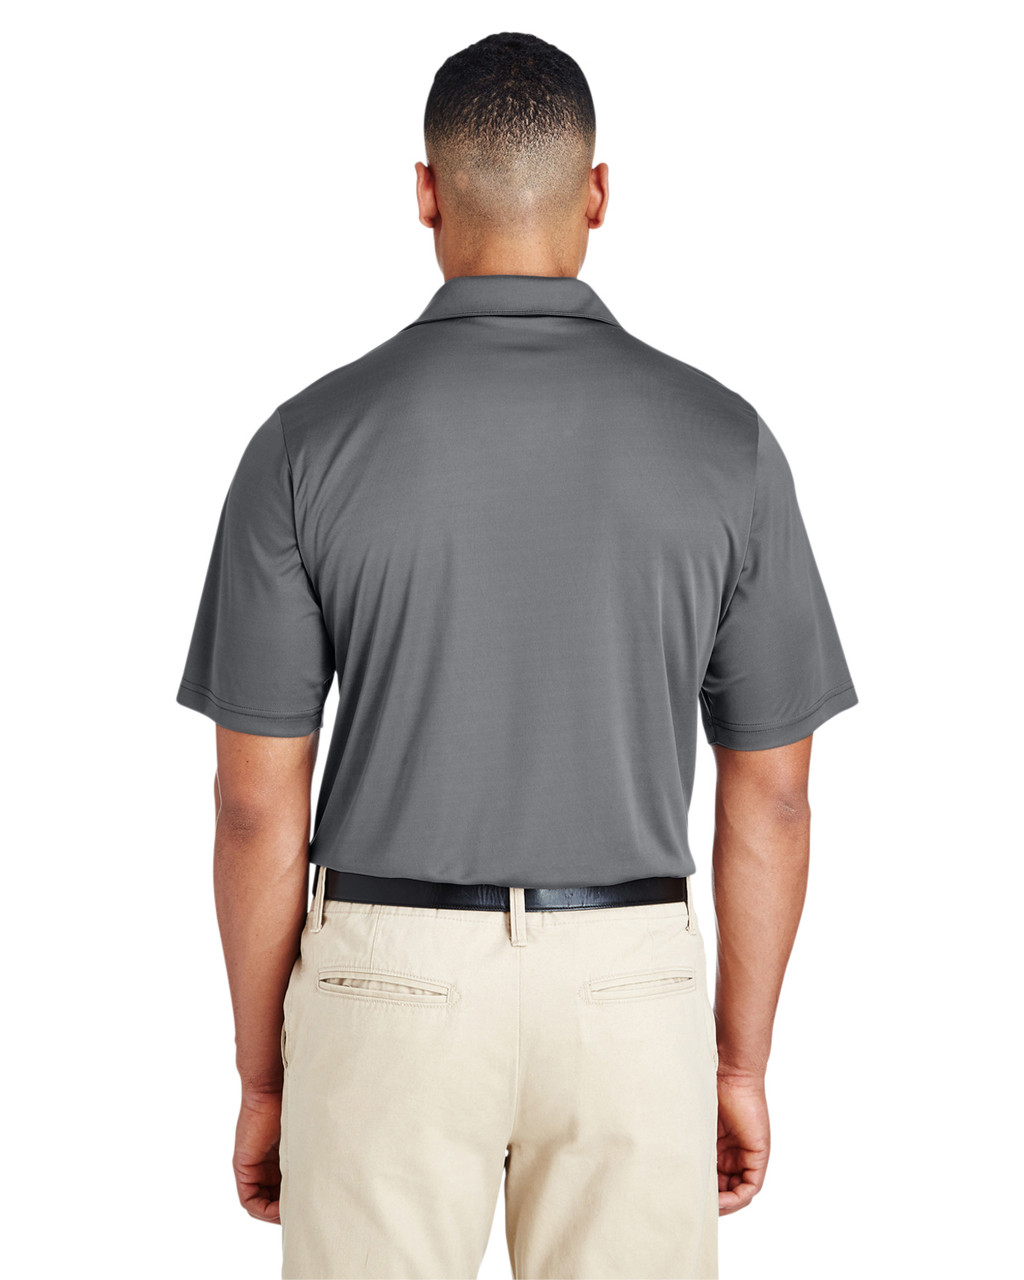 Sport Graphite - TT51 Team 365 Men's Zone Performance Polo